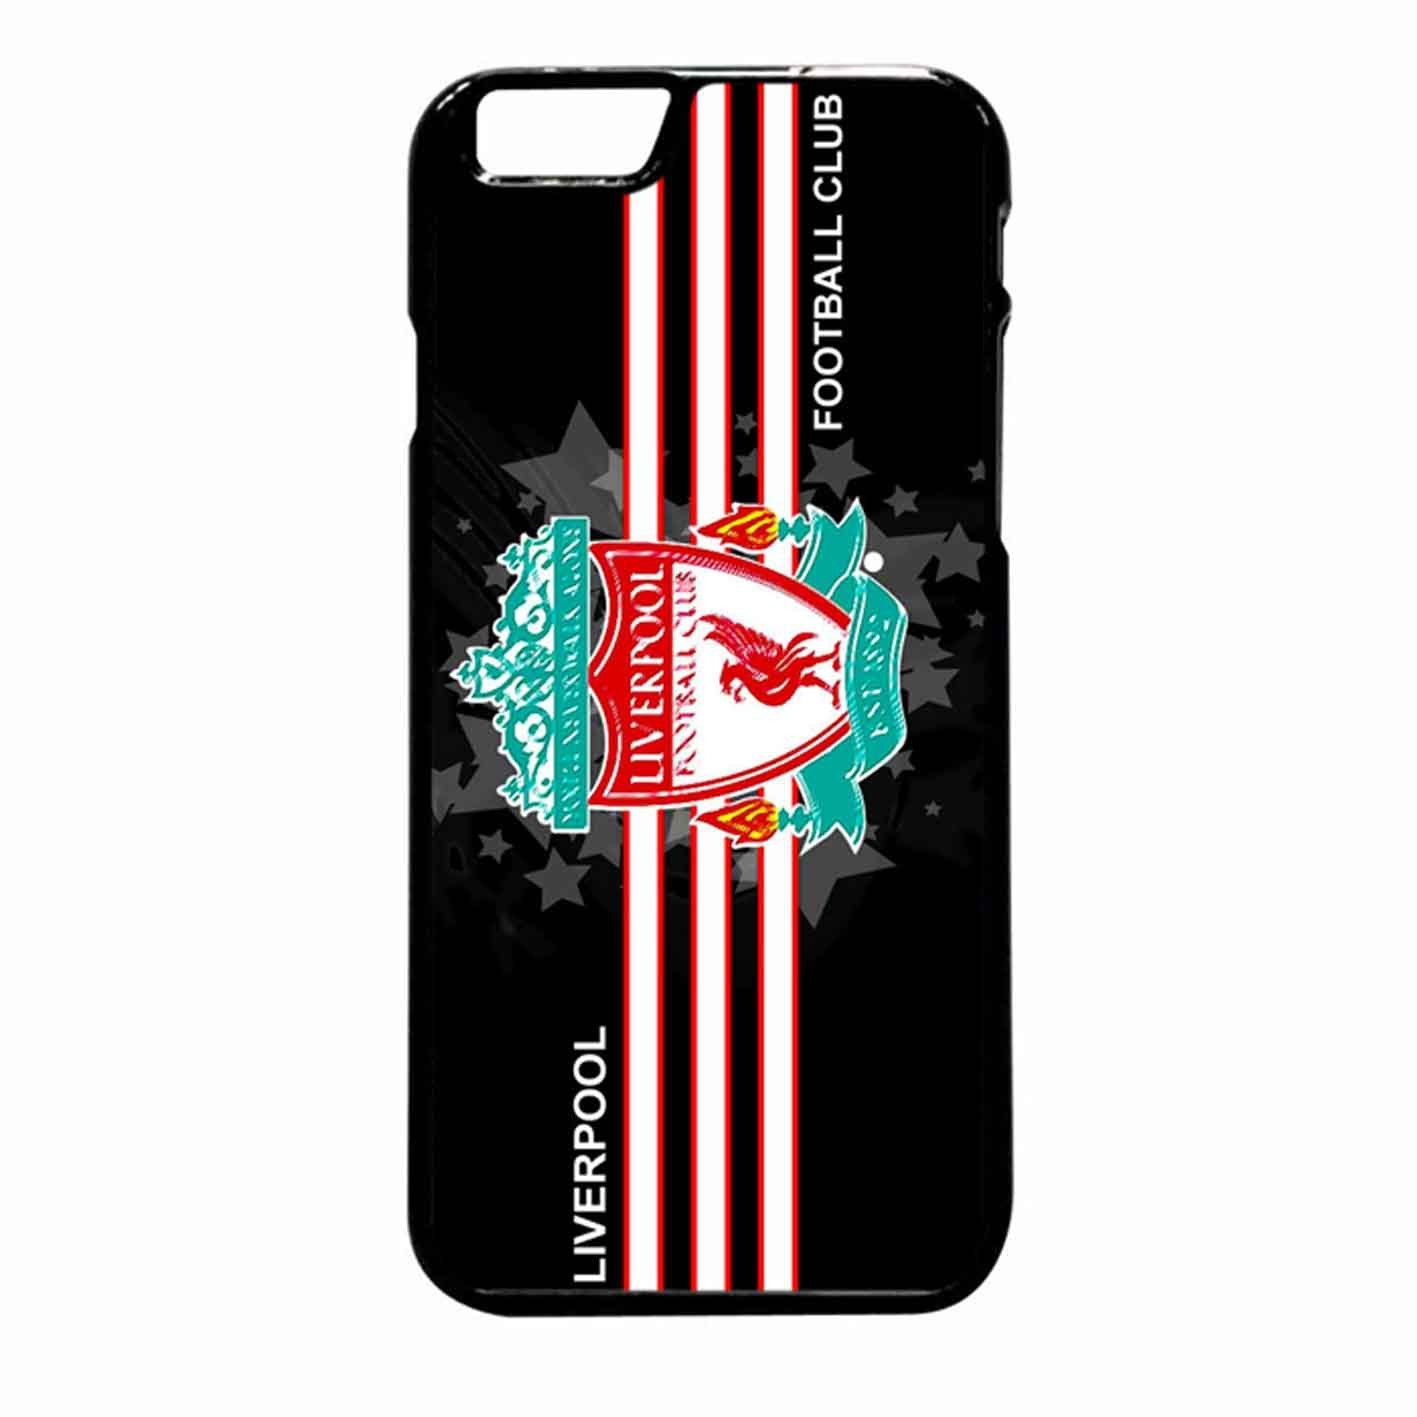 lfc iphone 6 plus case